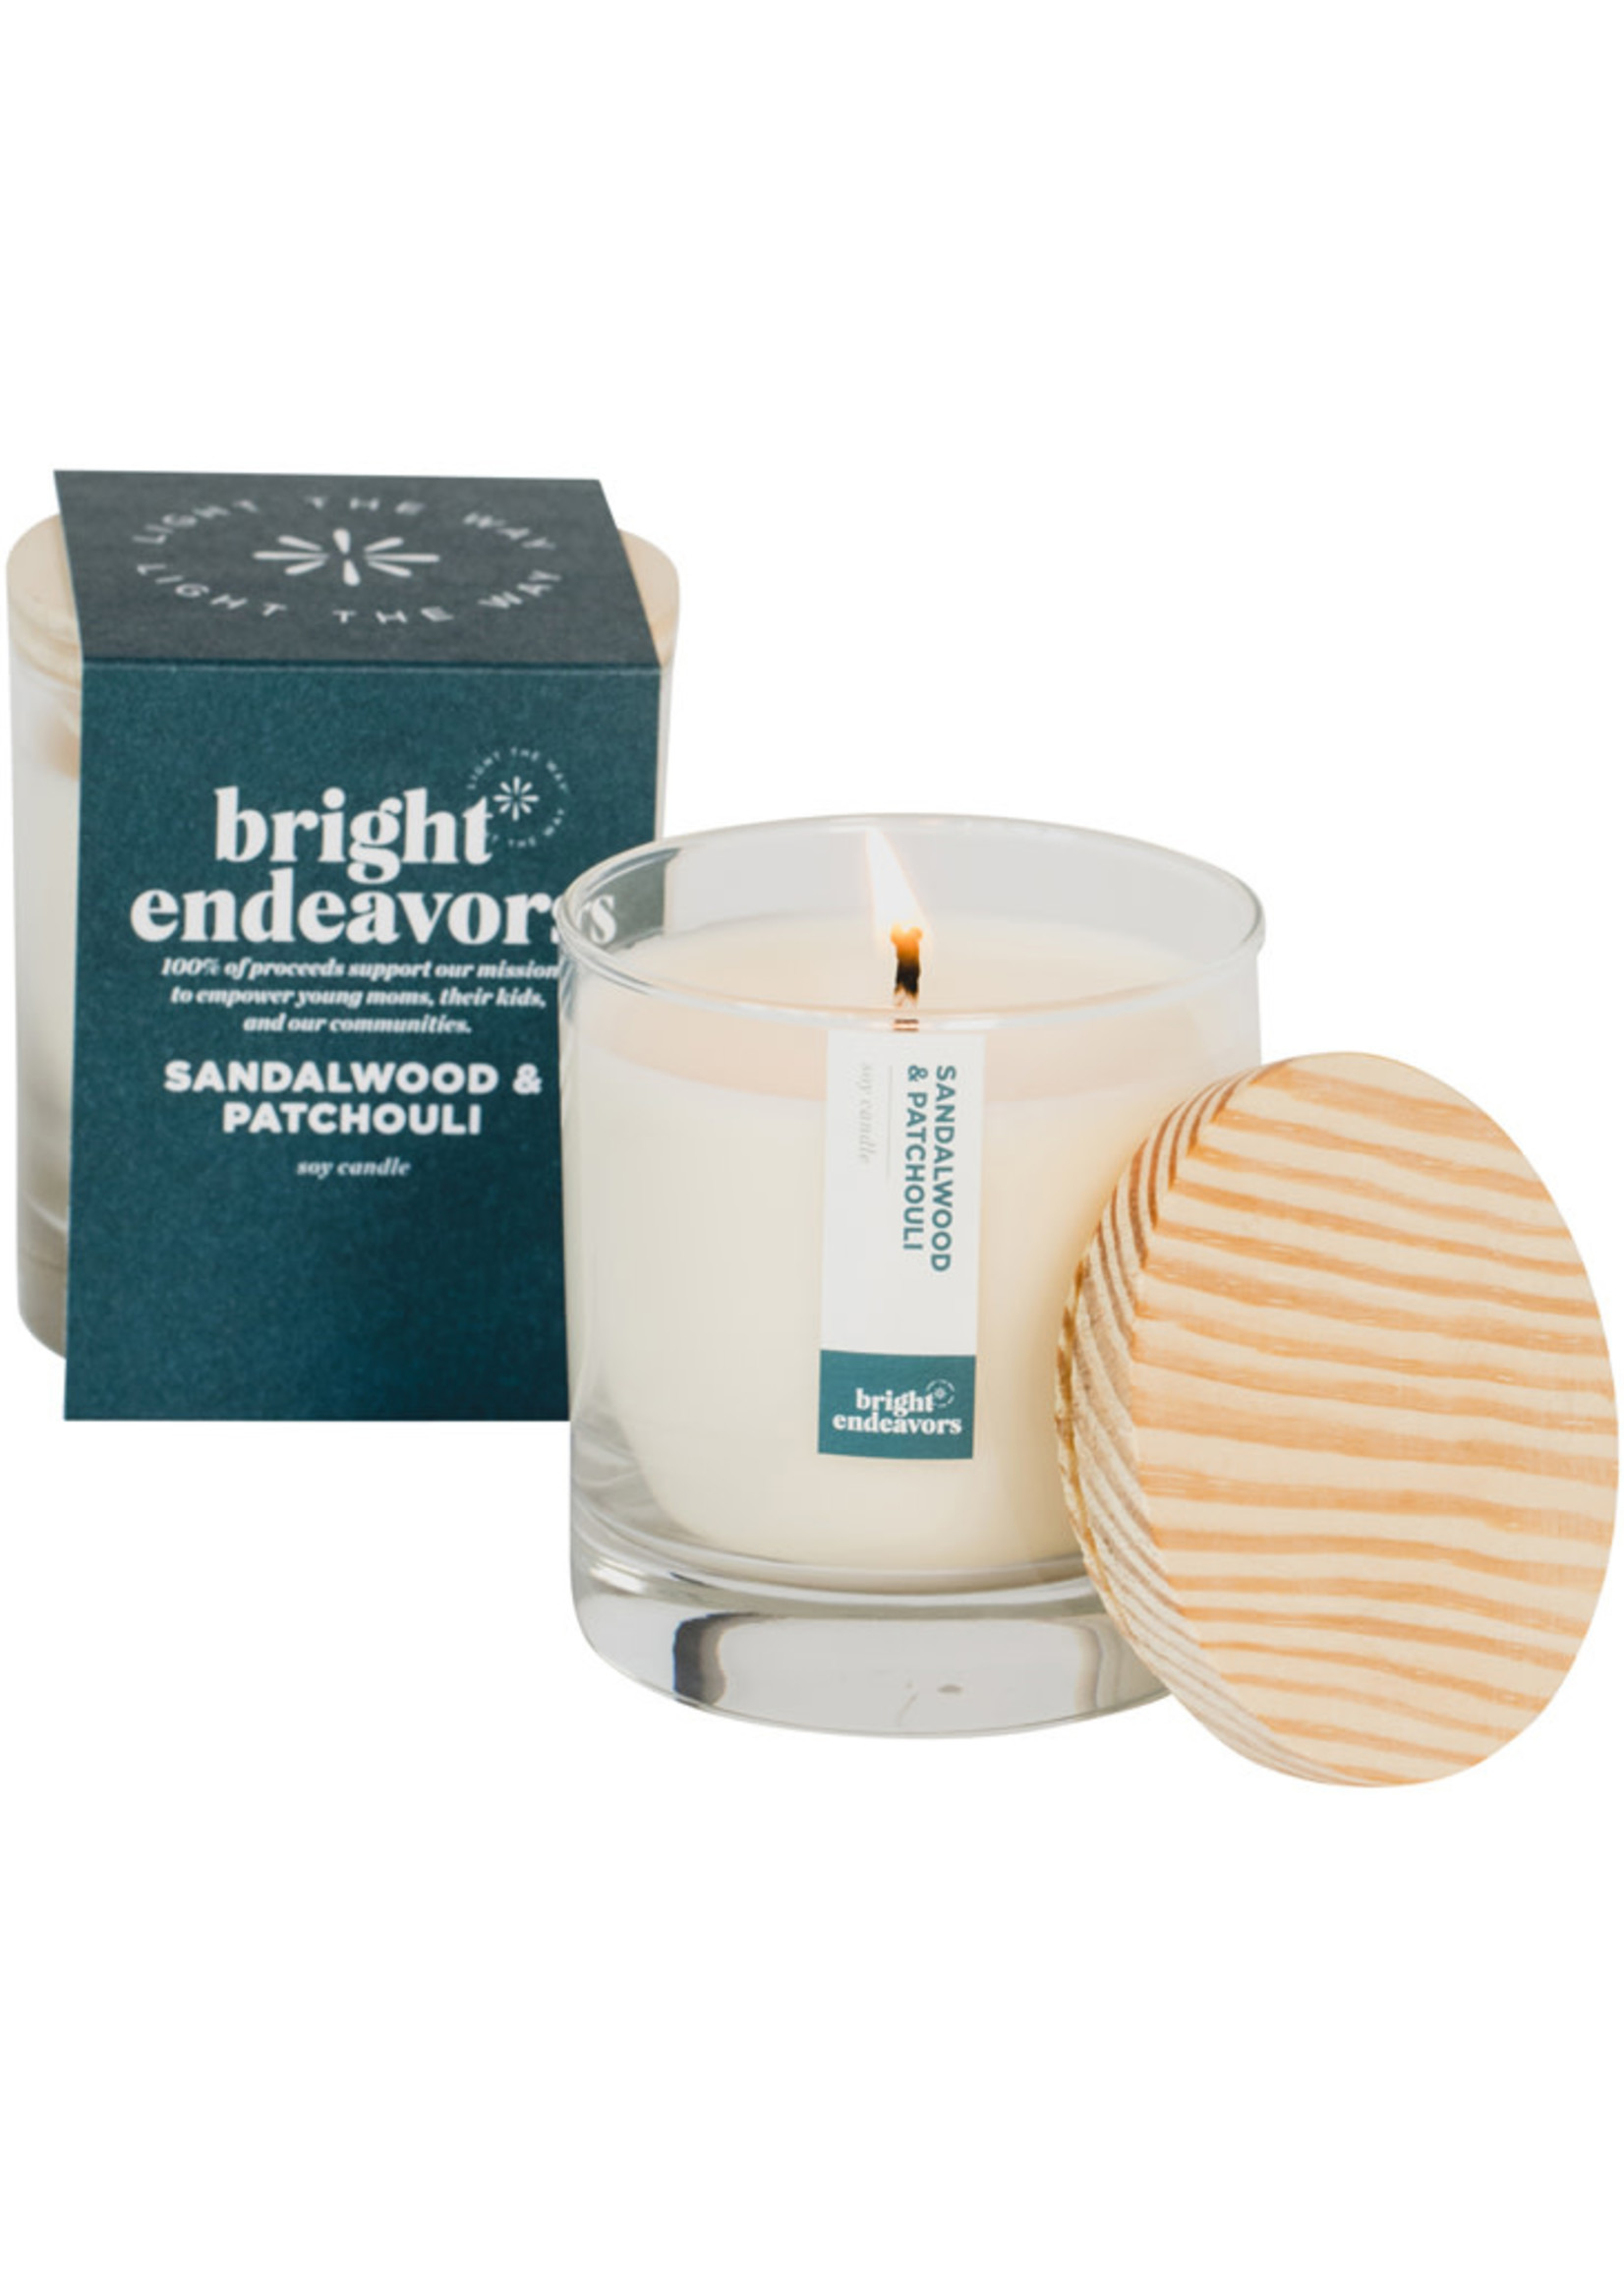 Bright Endeavors Sandalwood & Patchouli Soy Candle